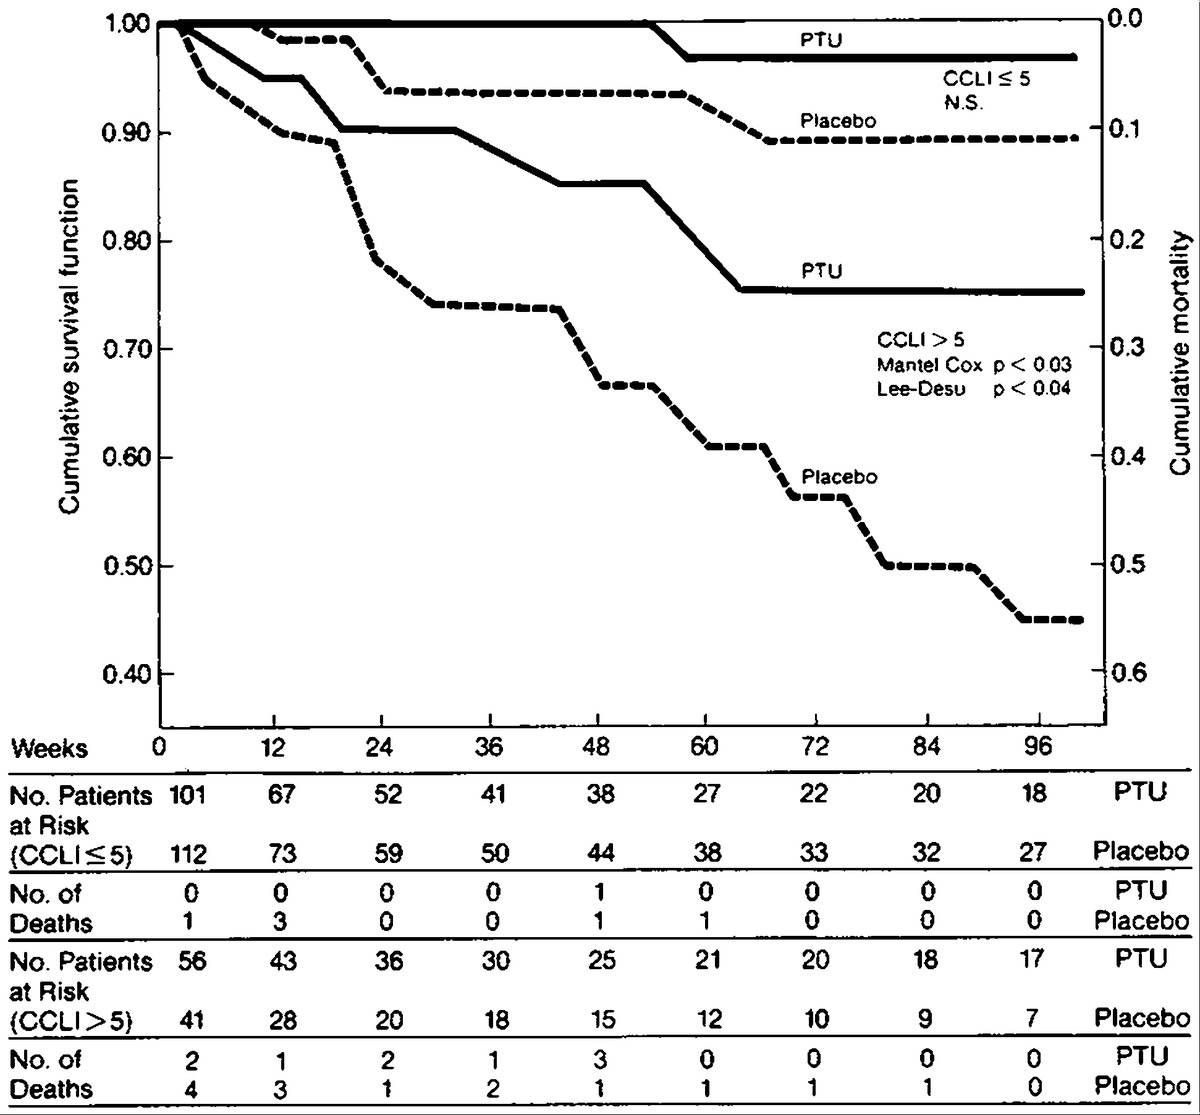 Long Term Treatment Of Alcoholic Liver Disease With Propylthiouracil Old Block Diagram And Pare This Figure2 The New Figure 2 Effect Ptu On Cumulative Survival Or Mortality Function Life Table Method In Compliant Patients Combined Clinical